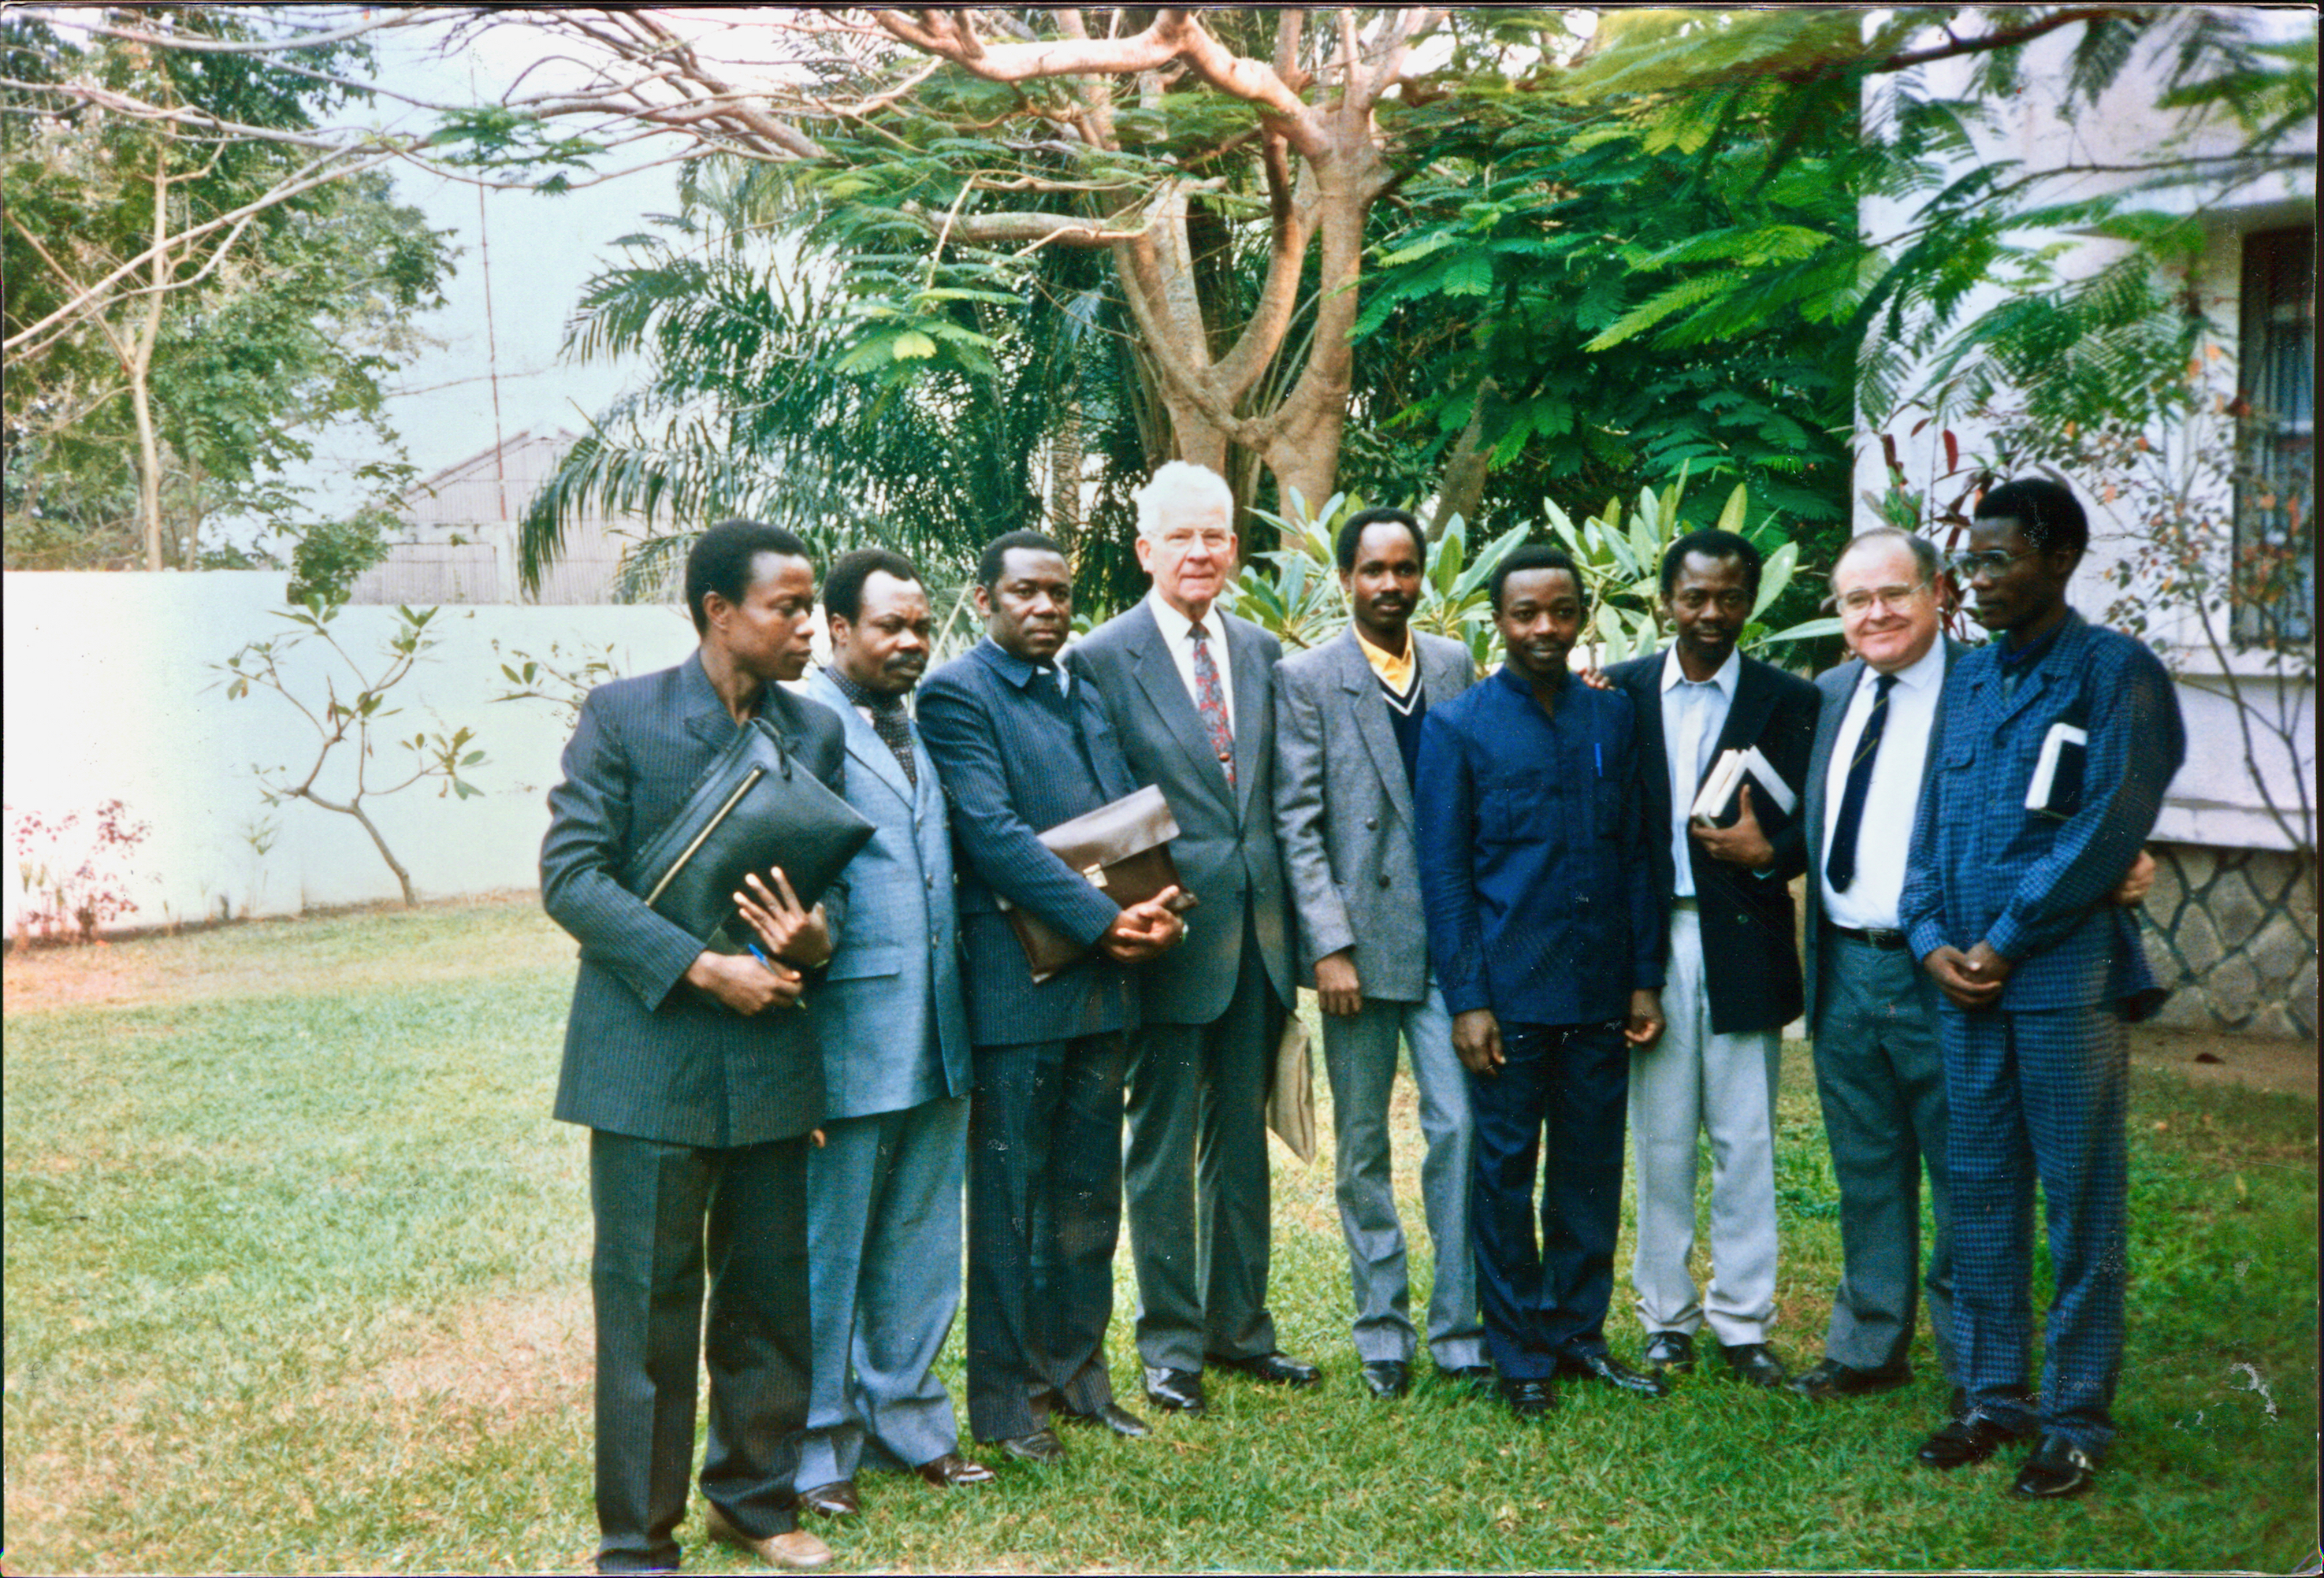 Elder Marvin J. Ashton of the Quorum of the Twelve Apostles, fourth from right, and Elder Alexander B. Morrison of the Seventy, second from right, are joined by members of the Kinshasa Branch presidency and elders quorum presidency on Aug. 30, 1987, the day that Elder Ashton dedicated the country — then known as Zaire, now known as the Democratic Republic of the Congo — for the preaching of the gospel. Joining them are, from left, Brothers Makela, Shambuyi Biaya, Mawangi, Lendo, Nkitabungi, Bofanga and Ethenji.